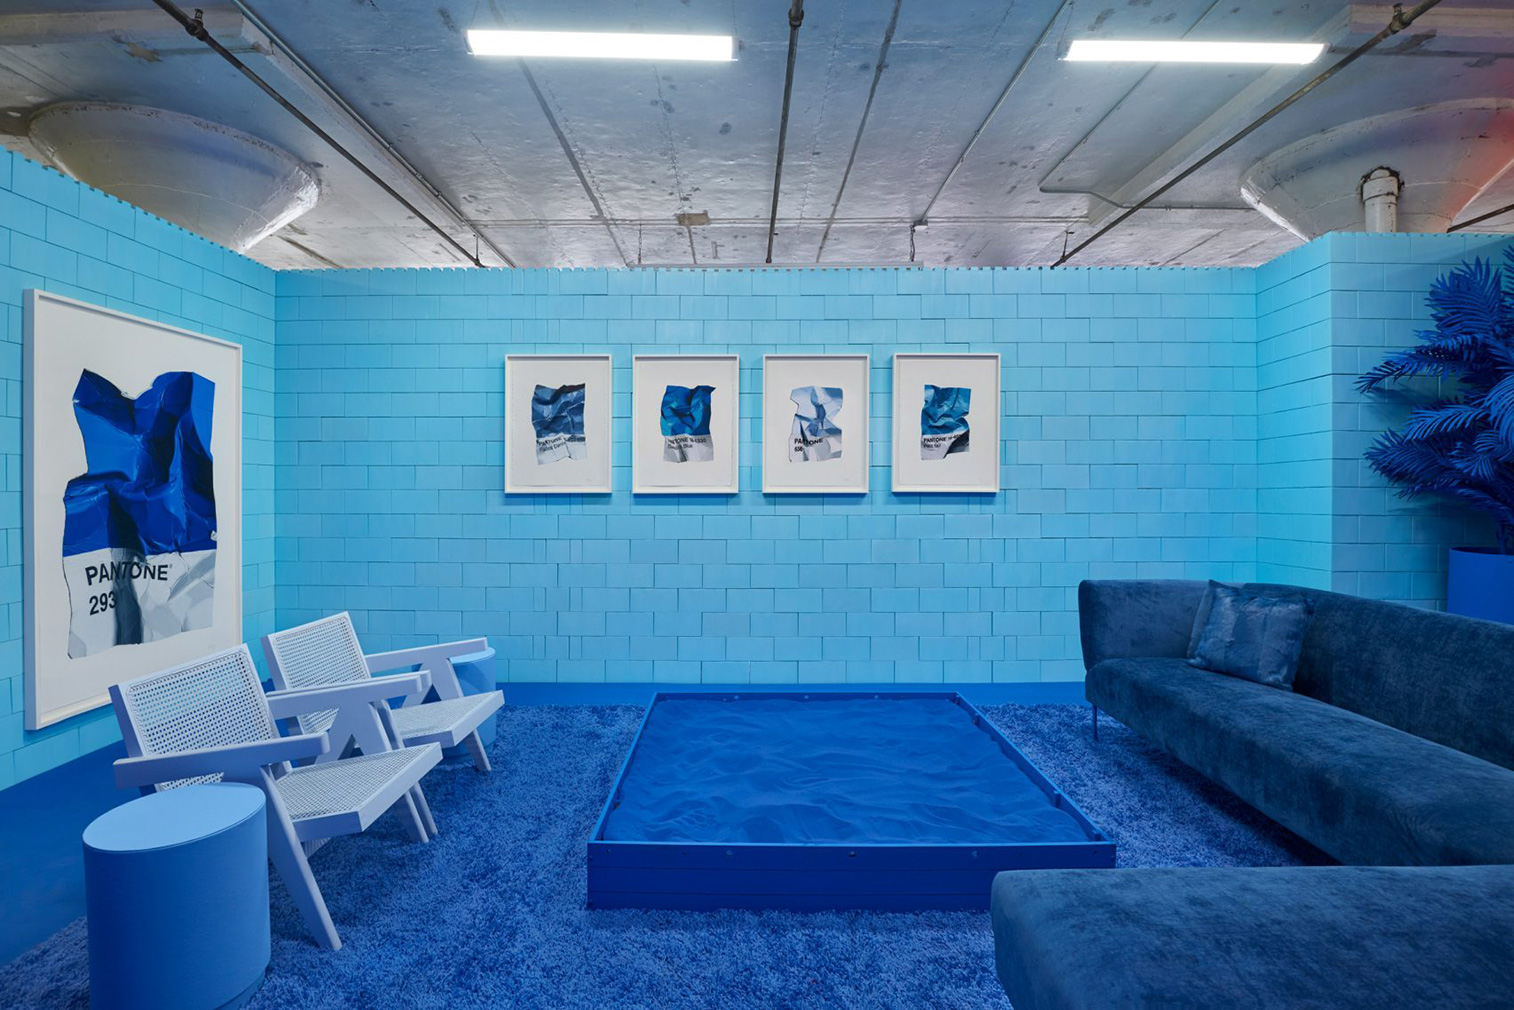 Artist CJ Hendry brings Pantone colours to life in this Instagramable installation